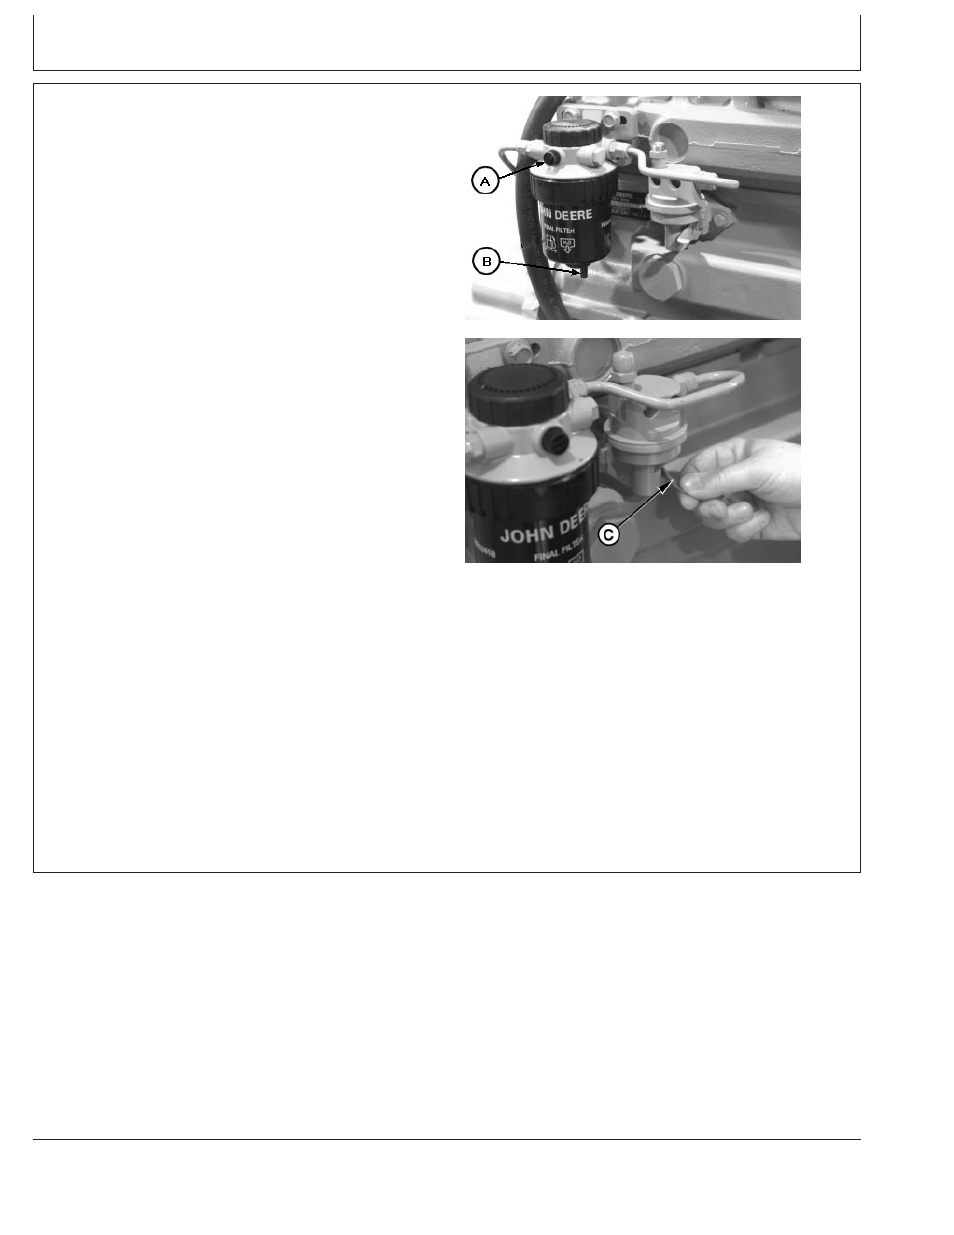 Checking Fuel Filter John Deere Cd4039df008 User Manual Page 67 86 Text Flow